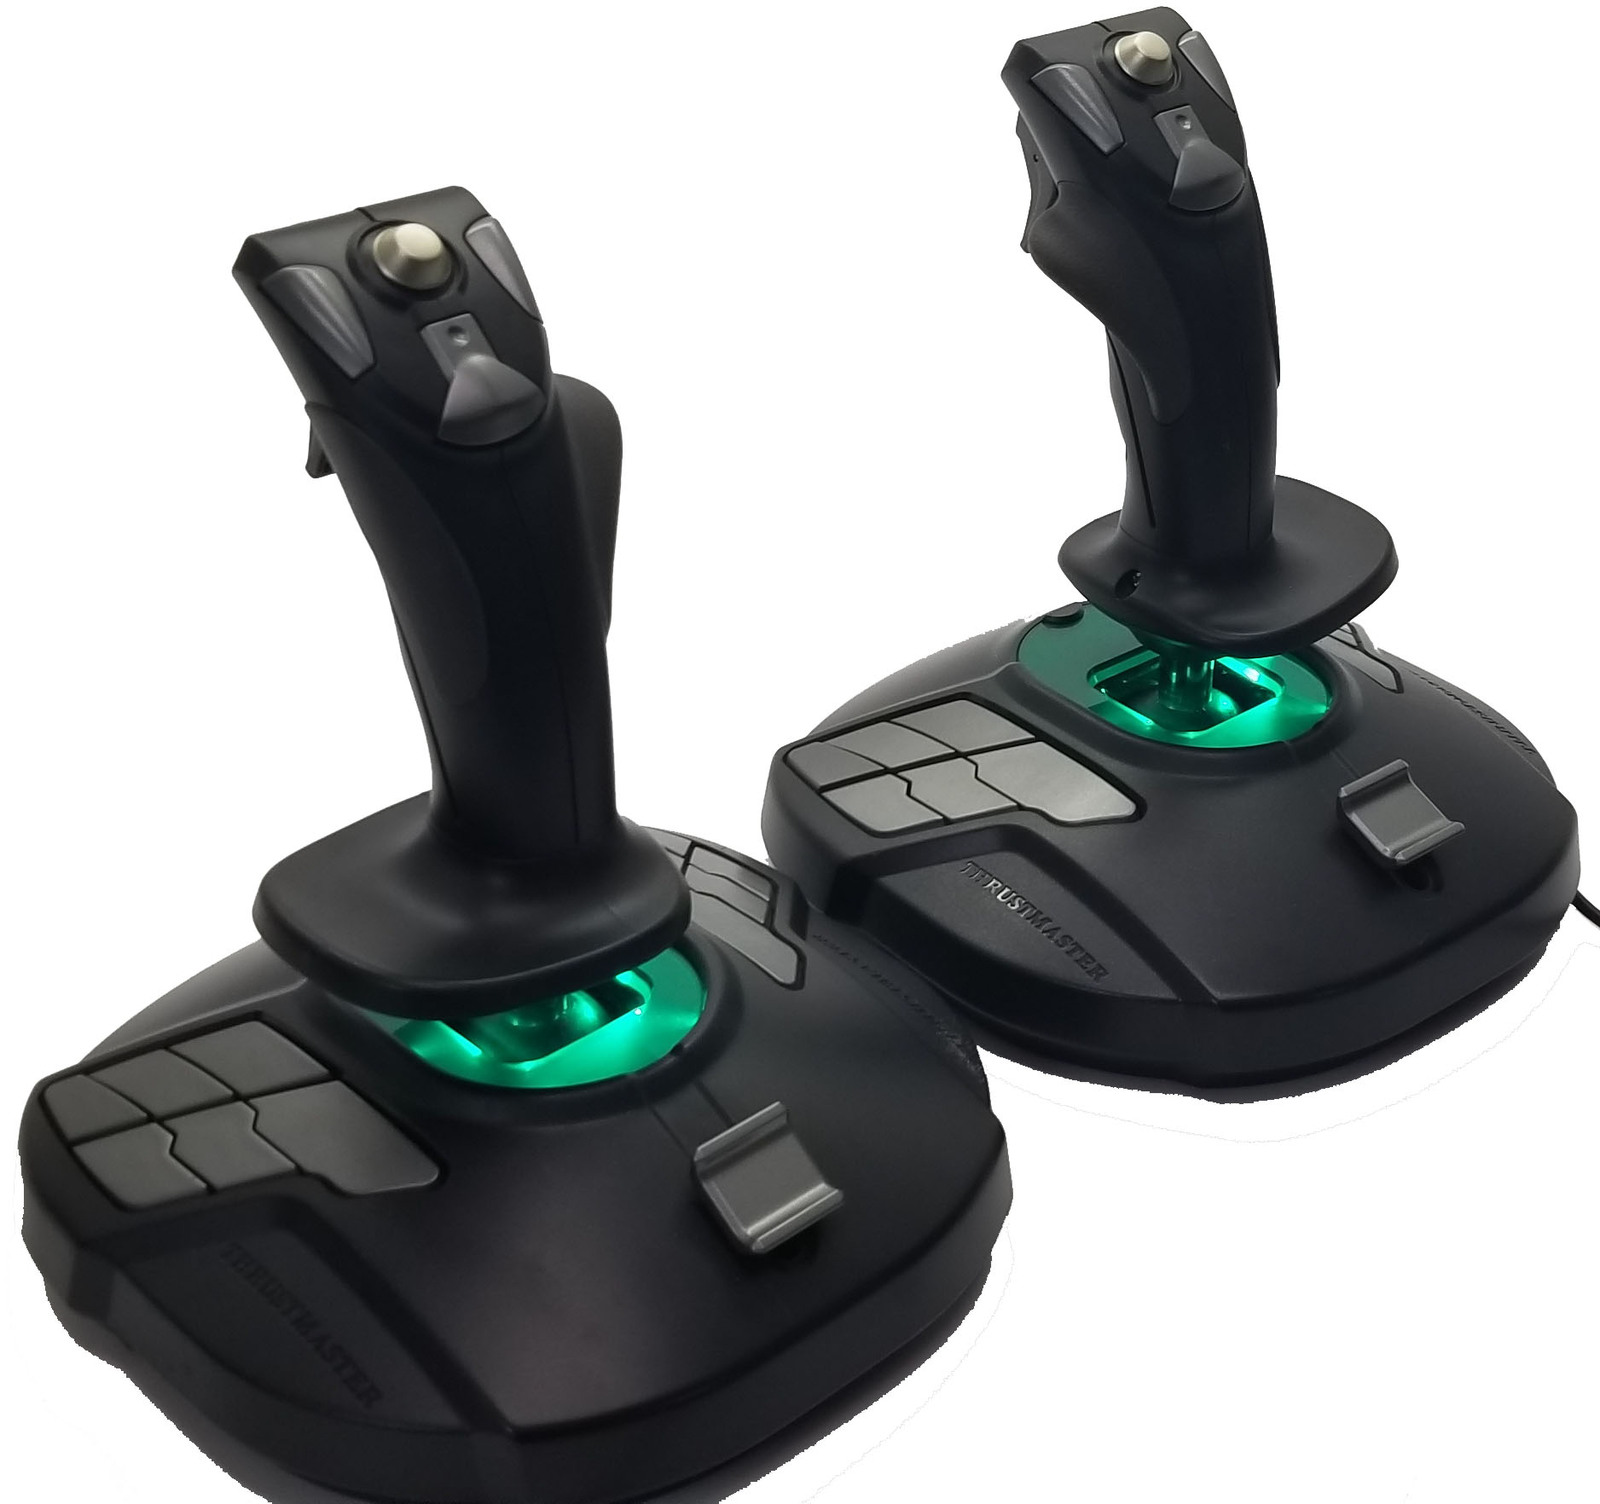 Thrustmaster t16000mv1 2 pack 002